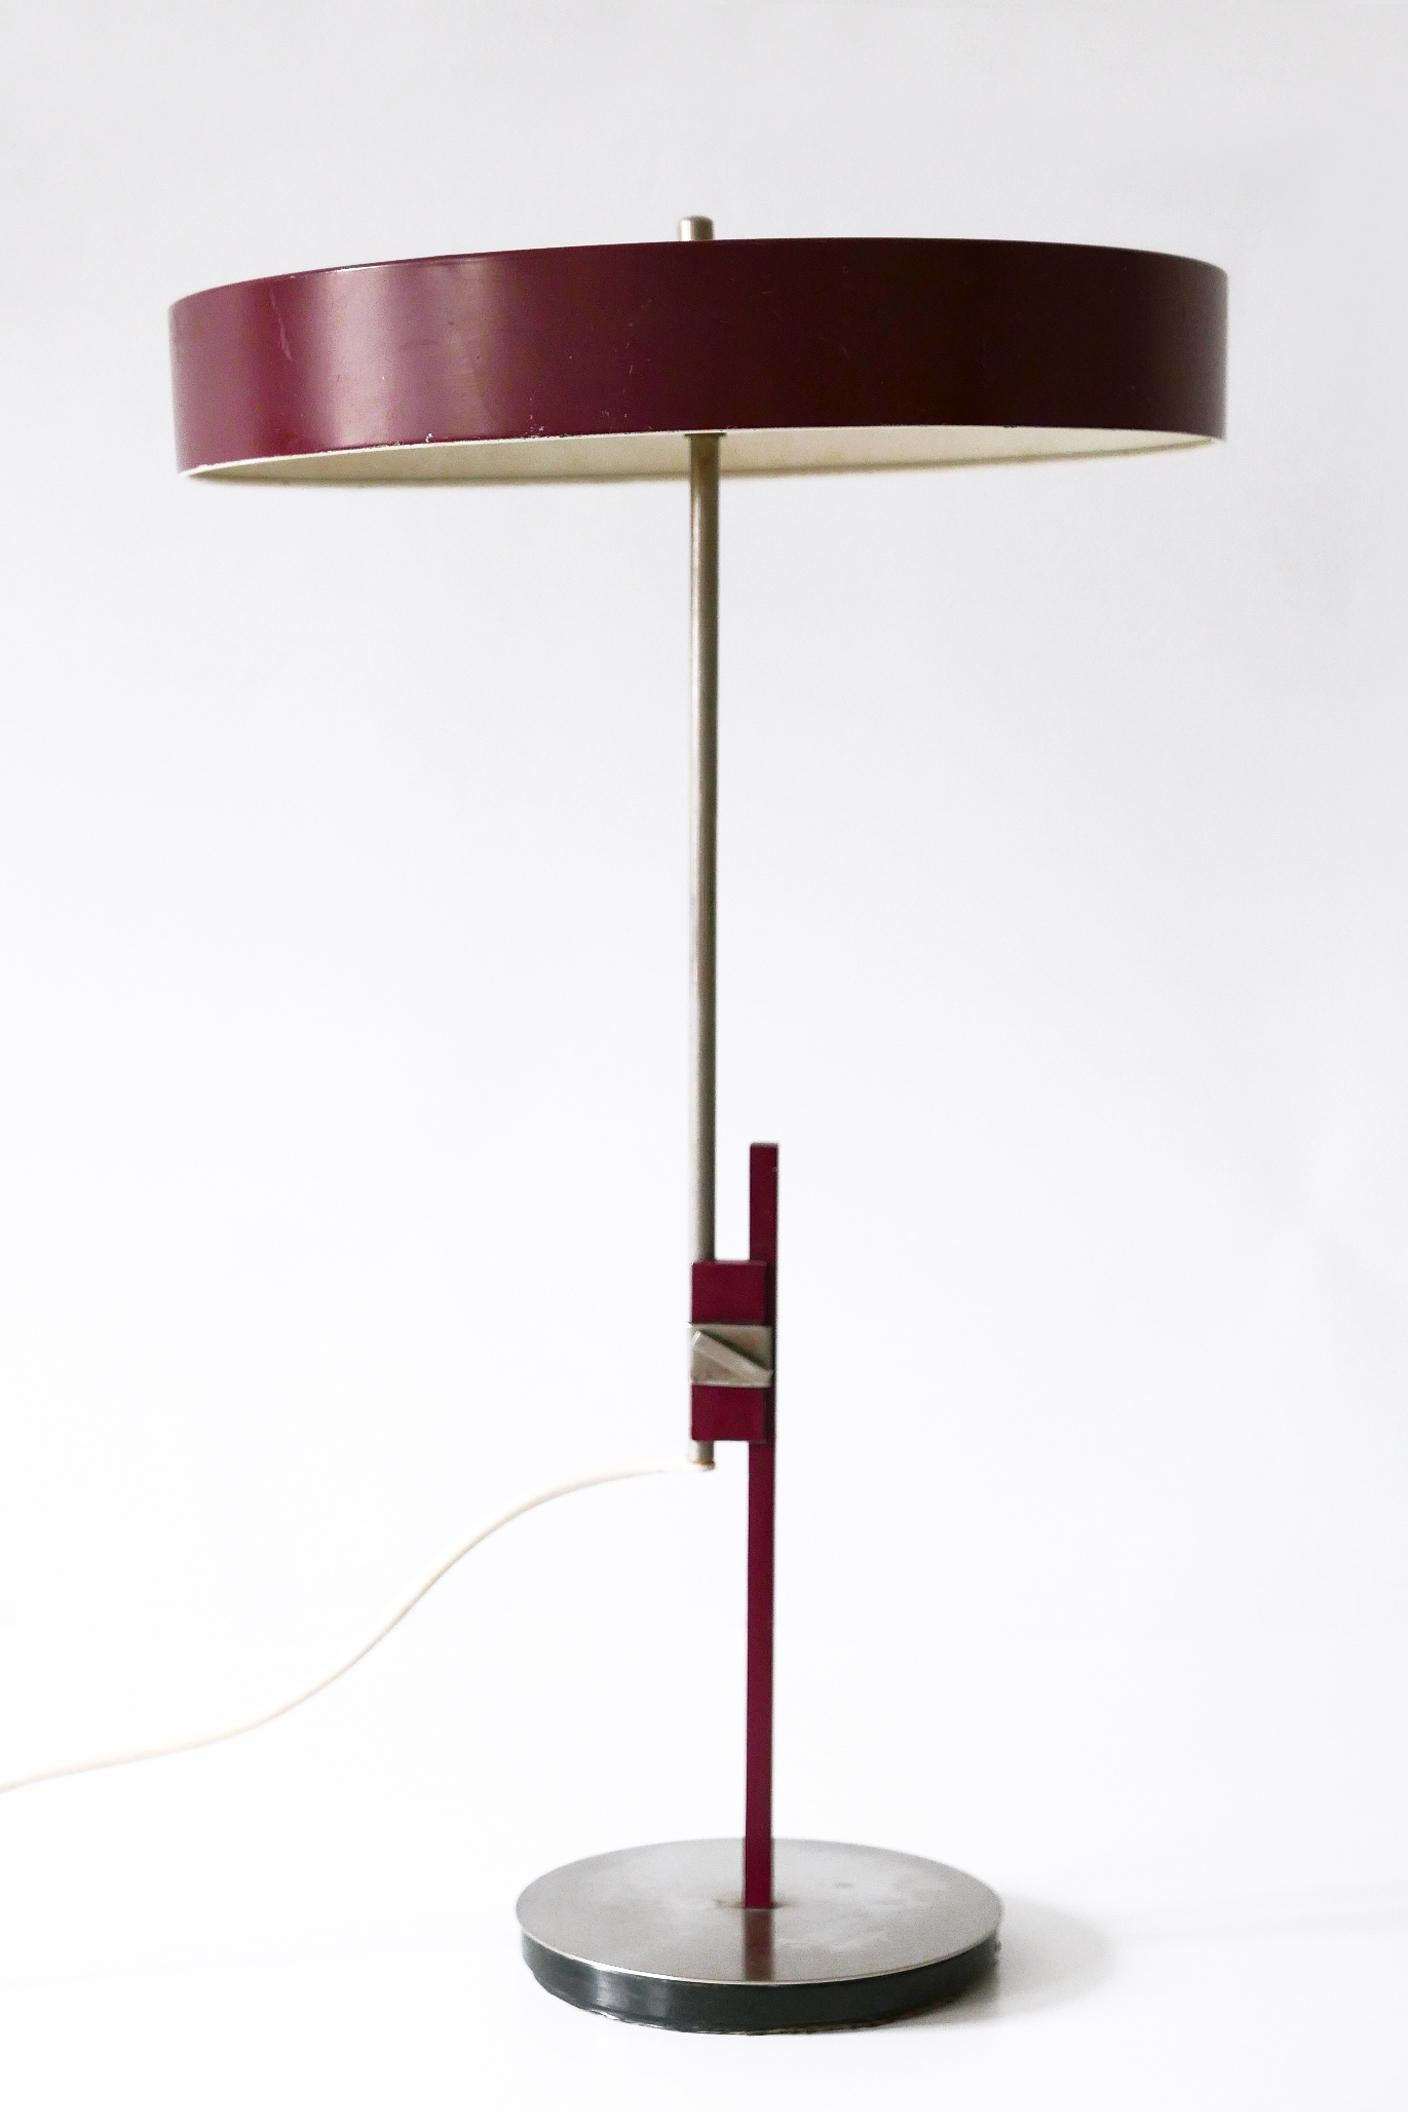 Leuchten Bilder Luxury Mid-century Modern President Table Lamp By Kaiser Leuchten 1960s Germany For Sale At 1stdibs